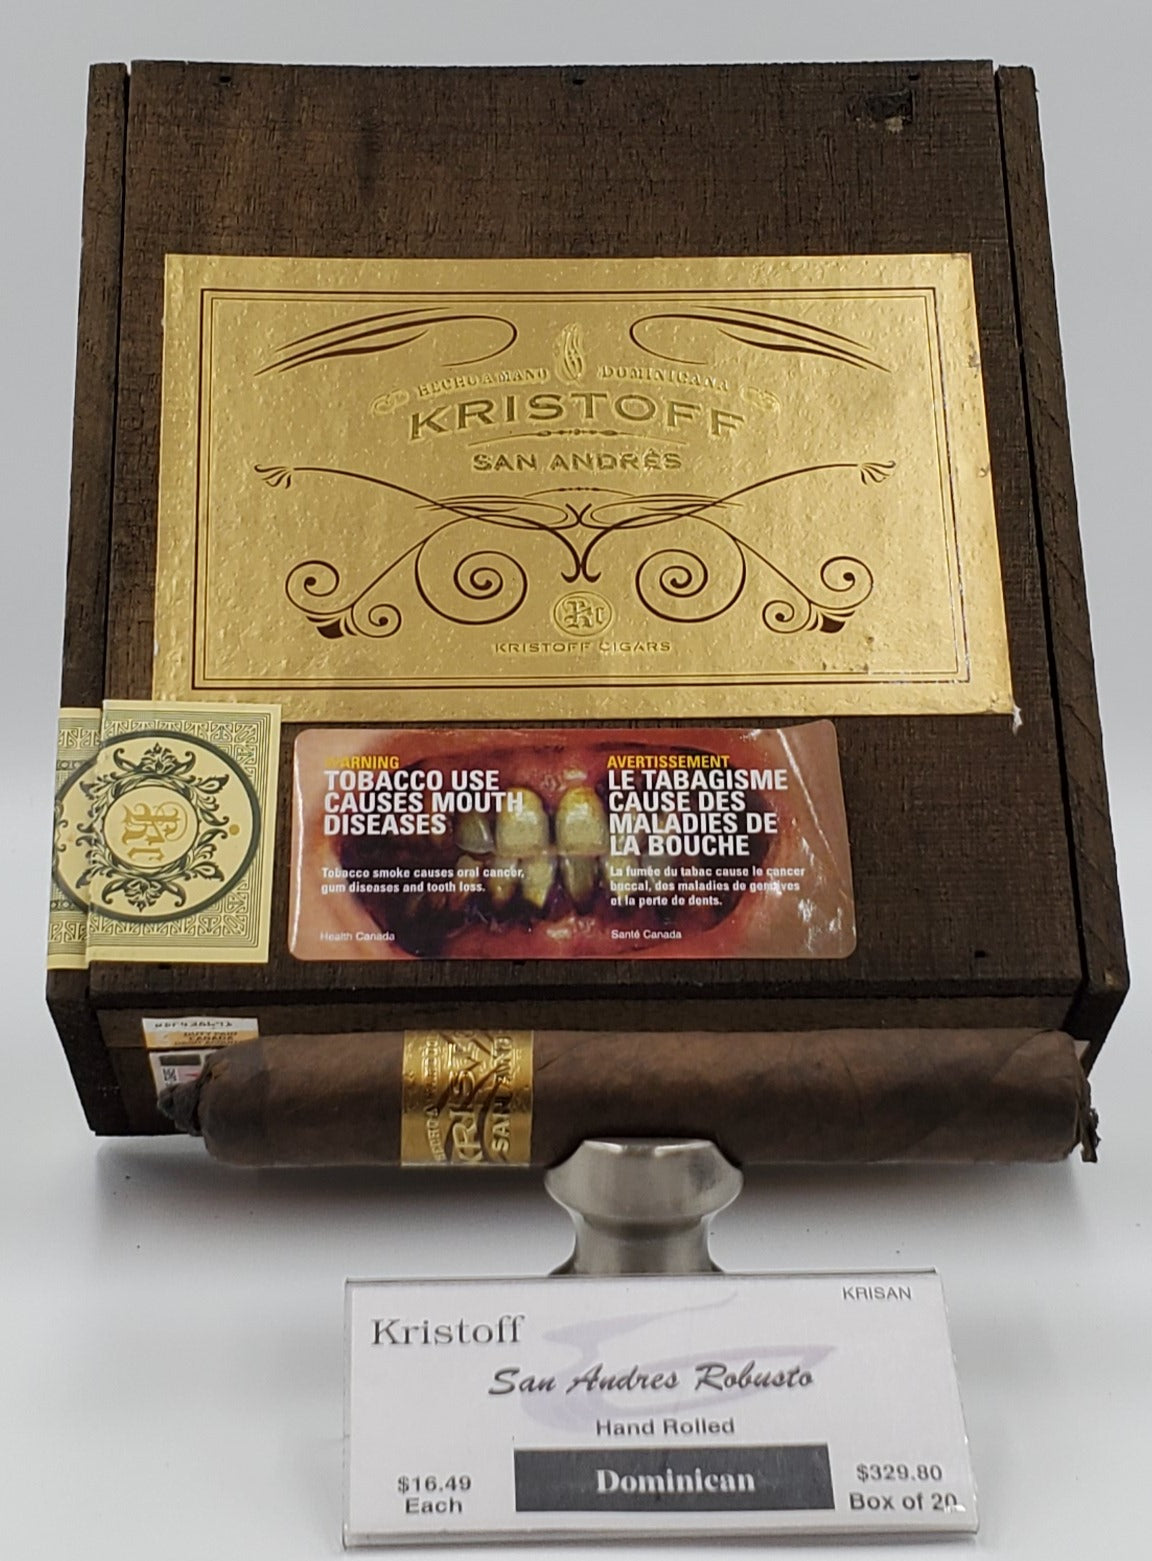 Kristoff San Andres Robusto